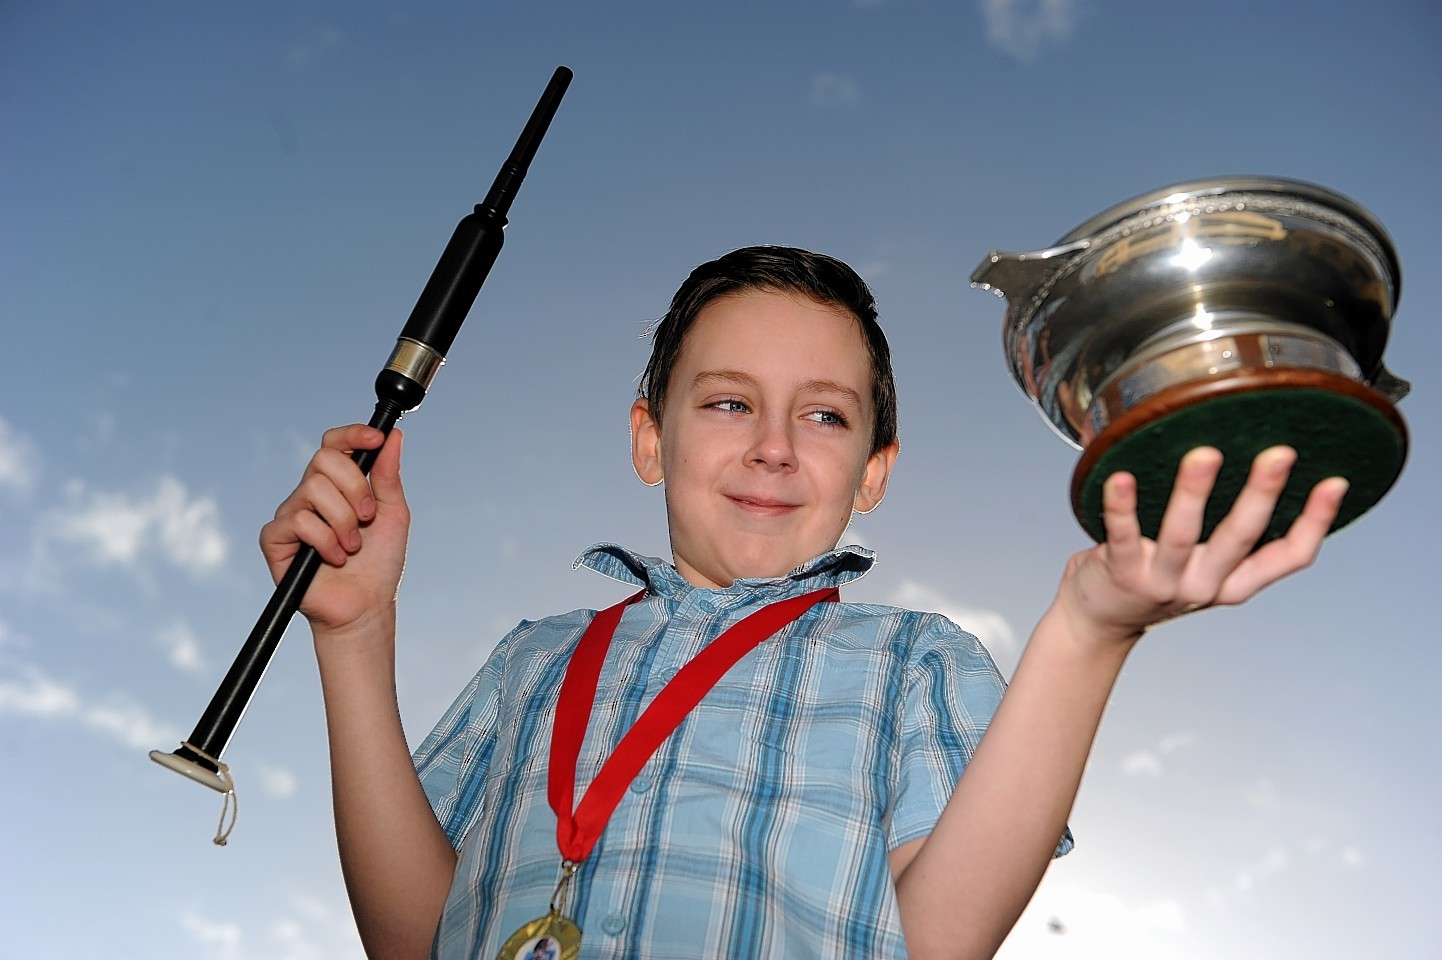 Calum MacLeod with his trophy after winning the 11 and under chanter contest